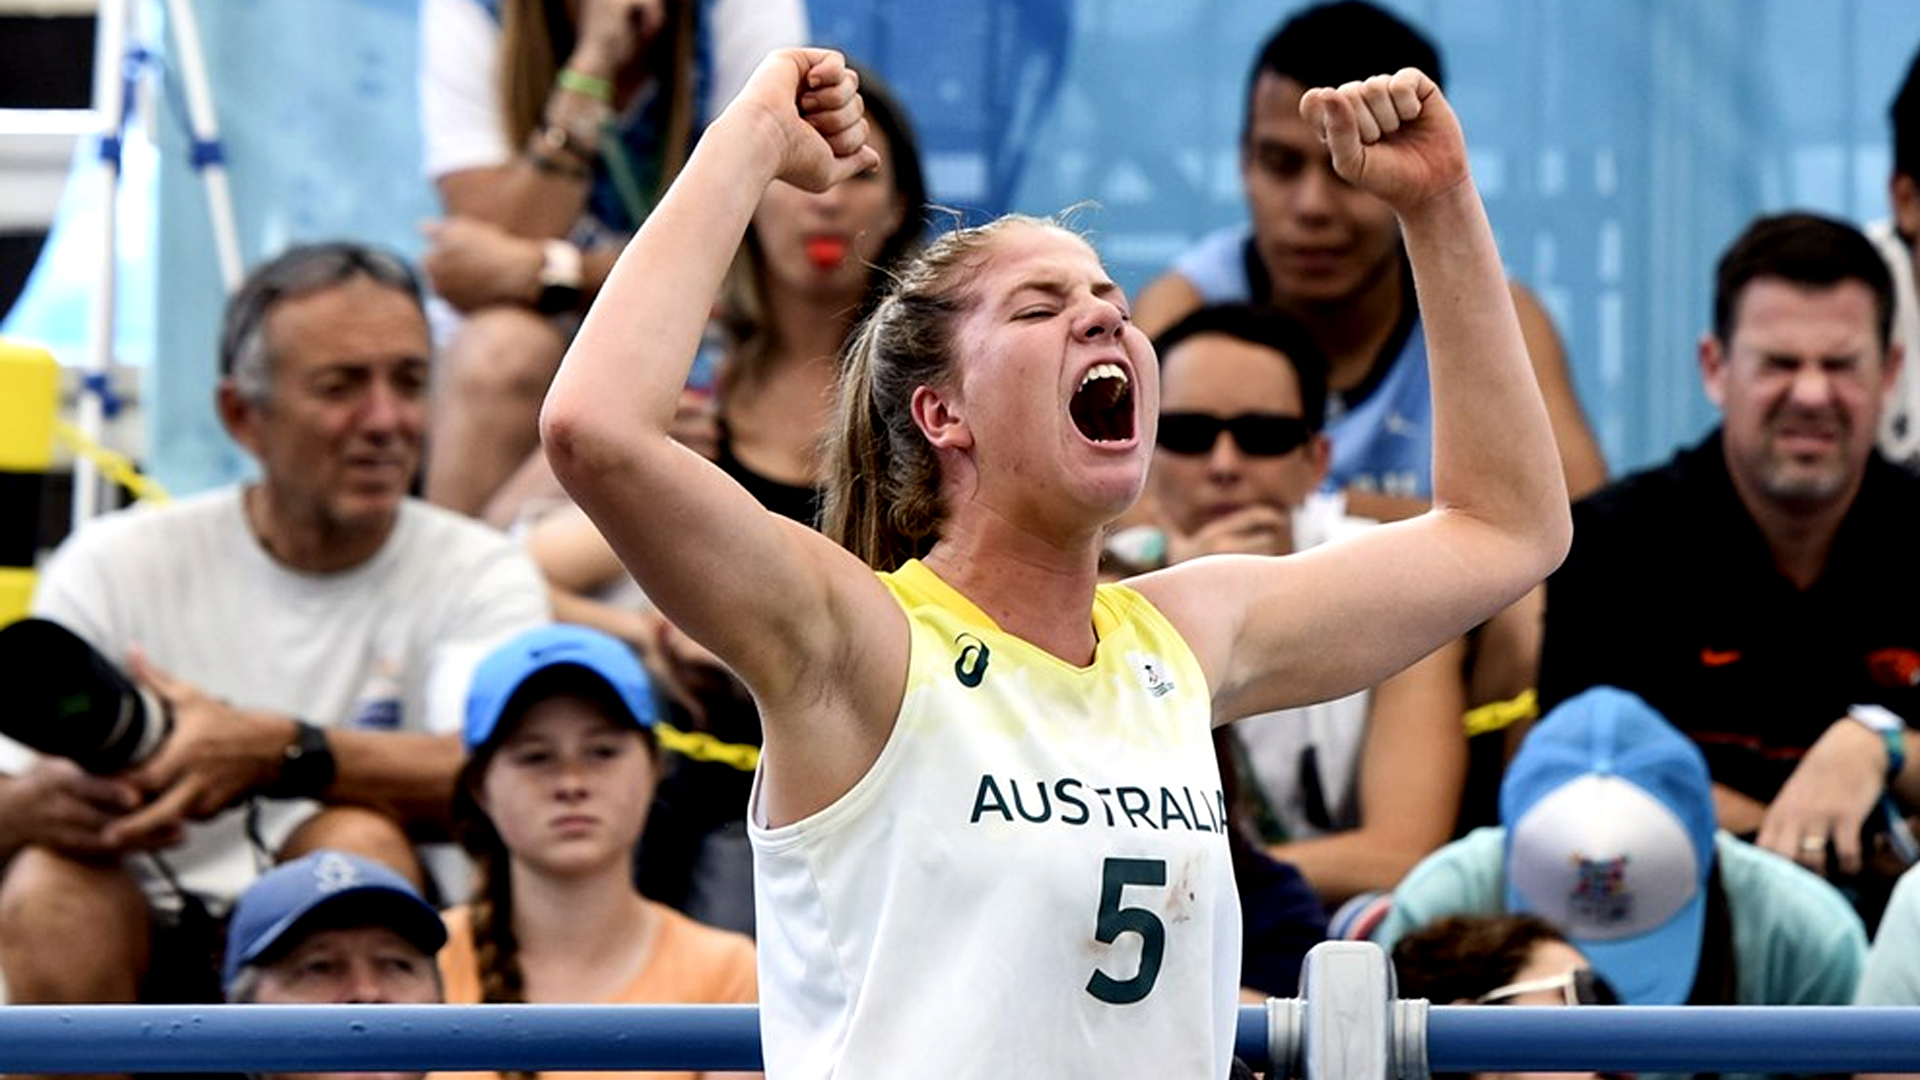 Next Up, Semi-Finals. Australia Continue To Thrive In Youth Olympics